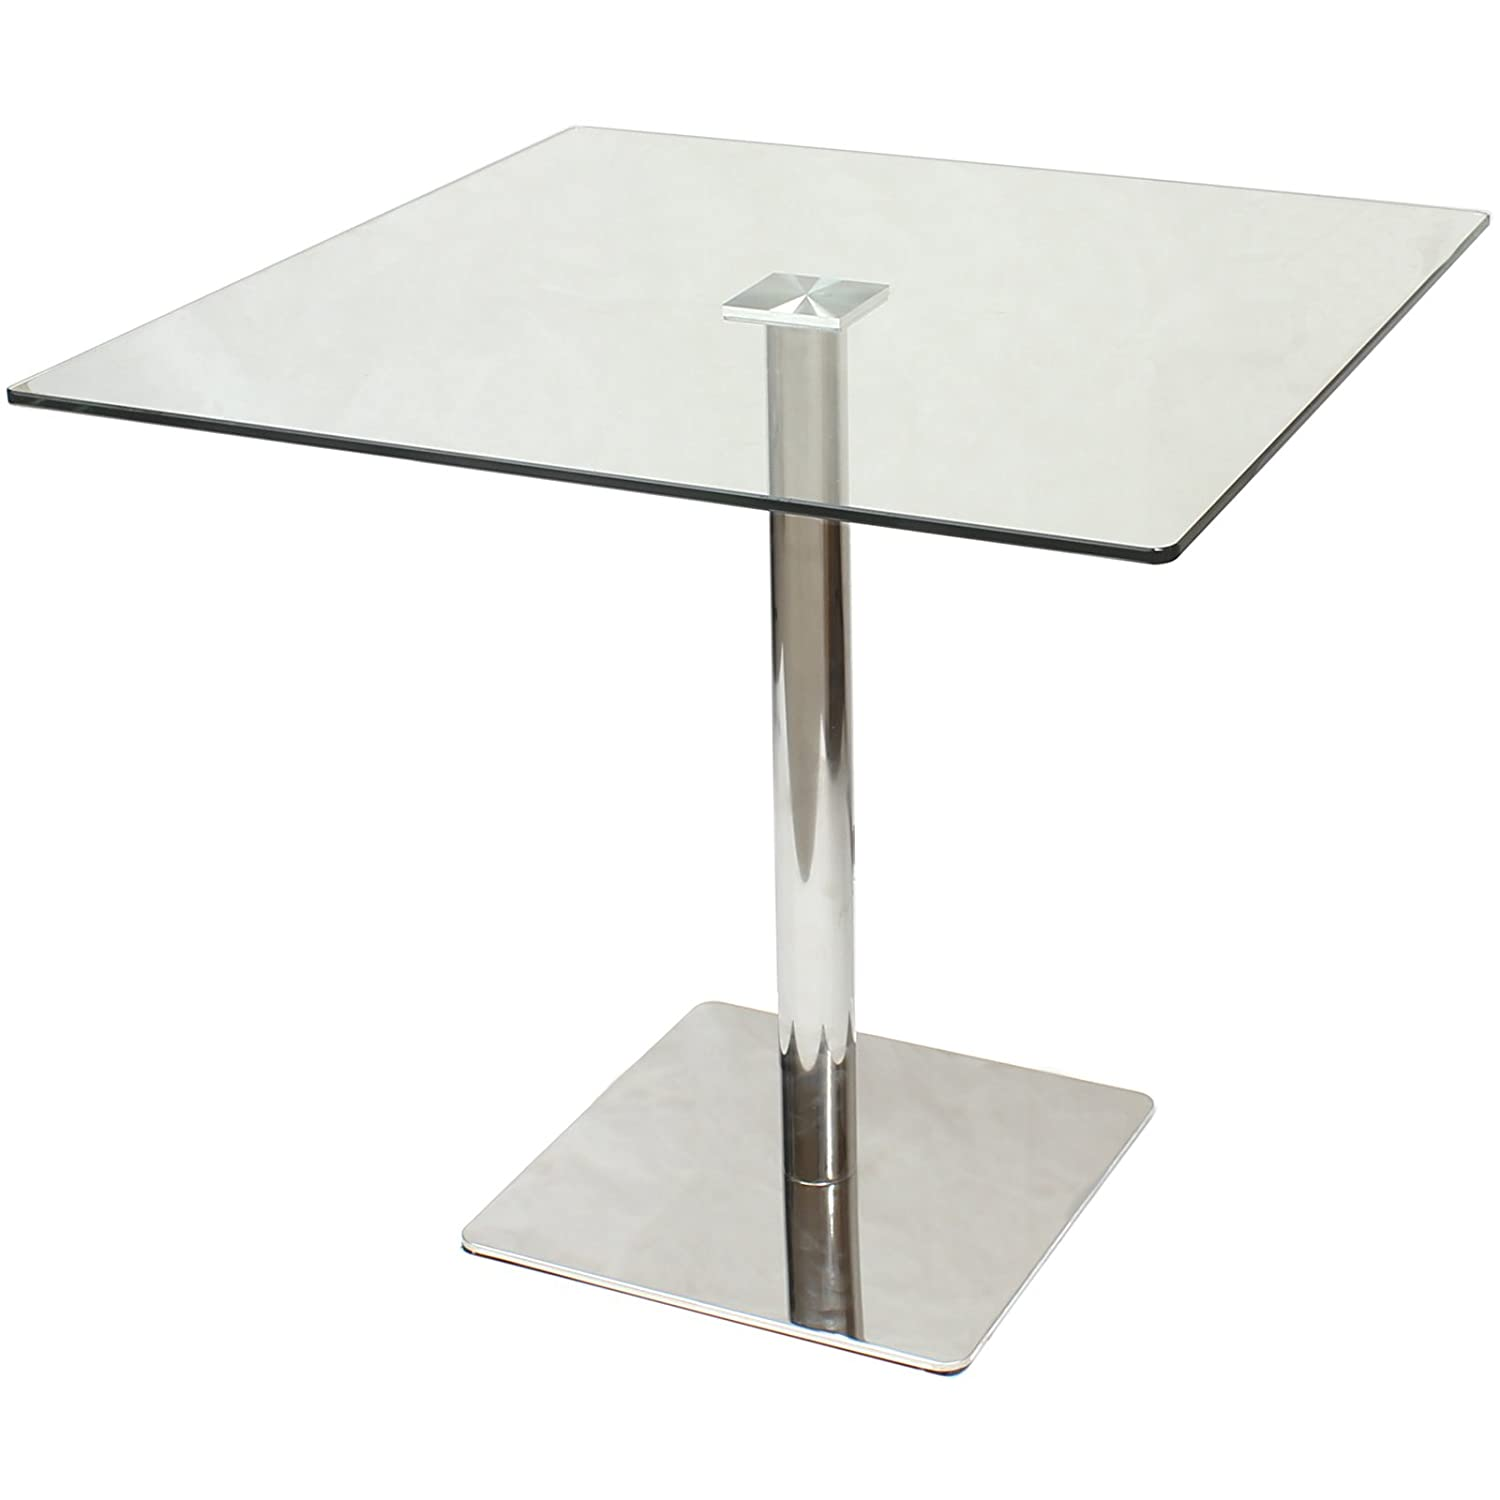 Hartleys 80cm Square Glass Top Dining Bistro Table Amazon